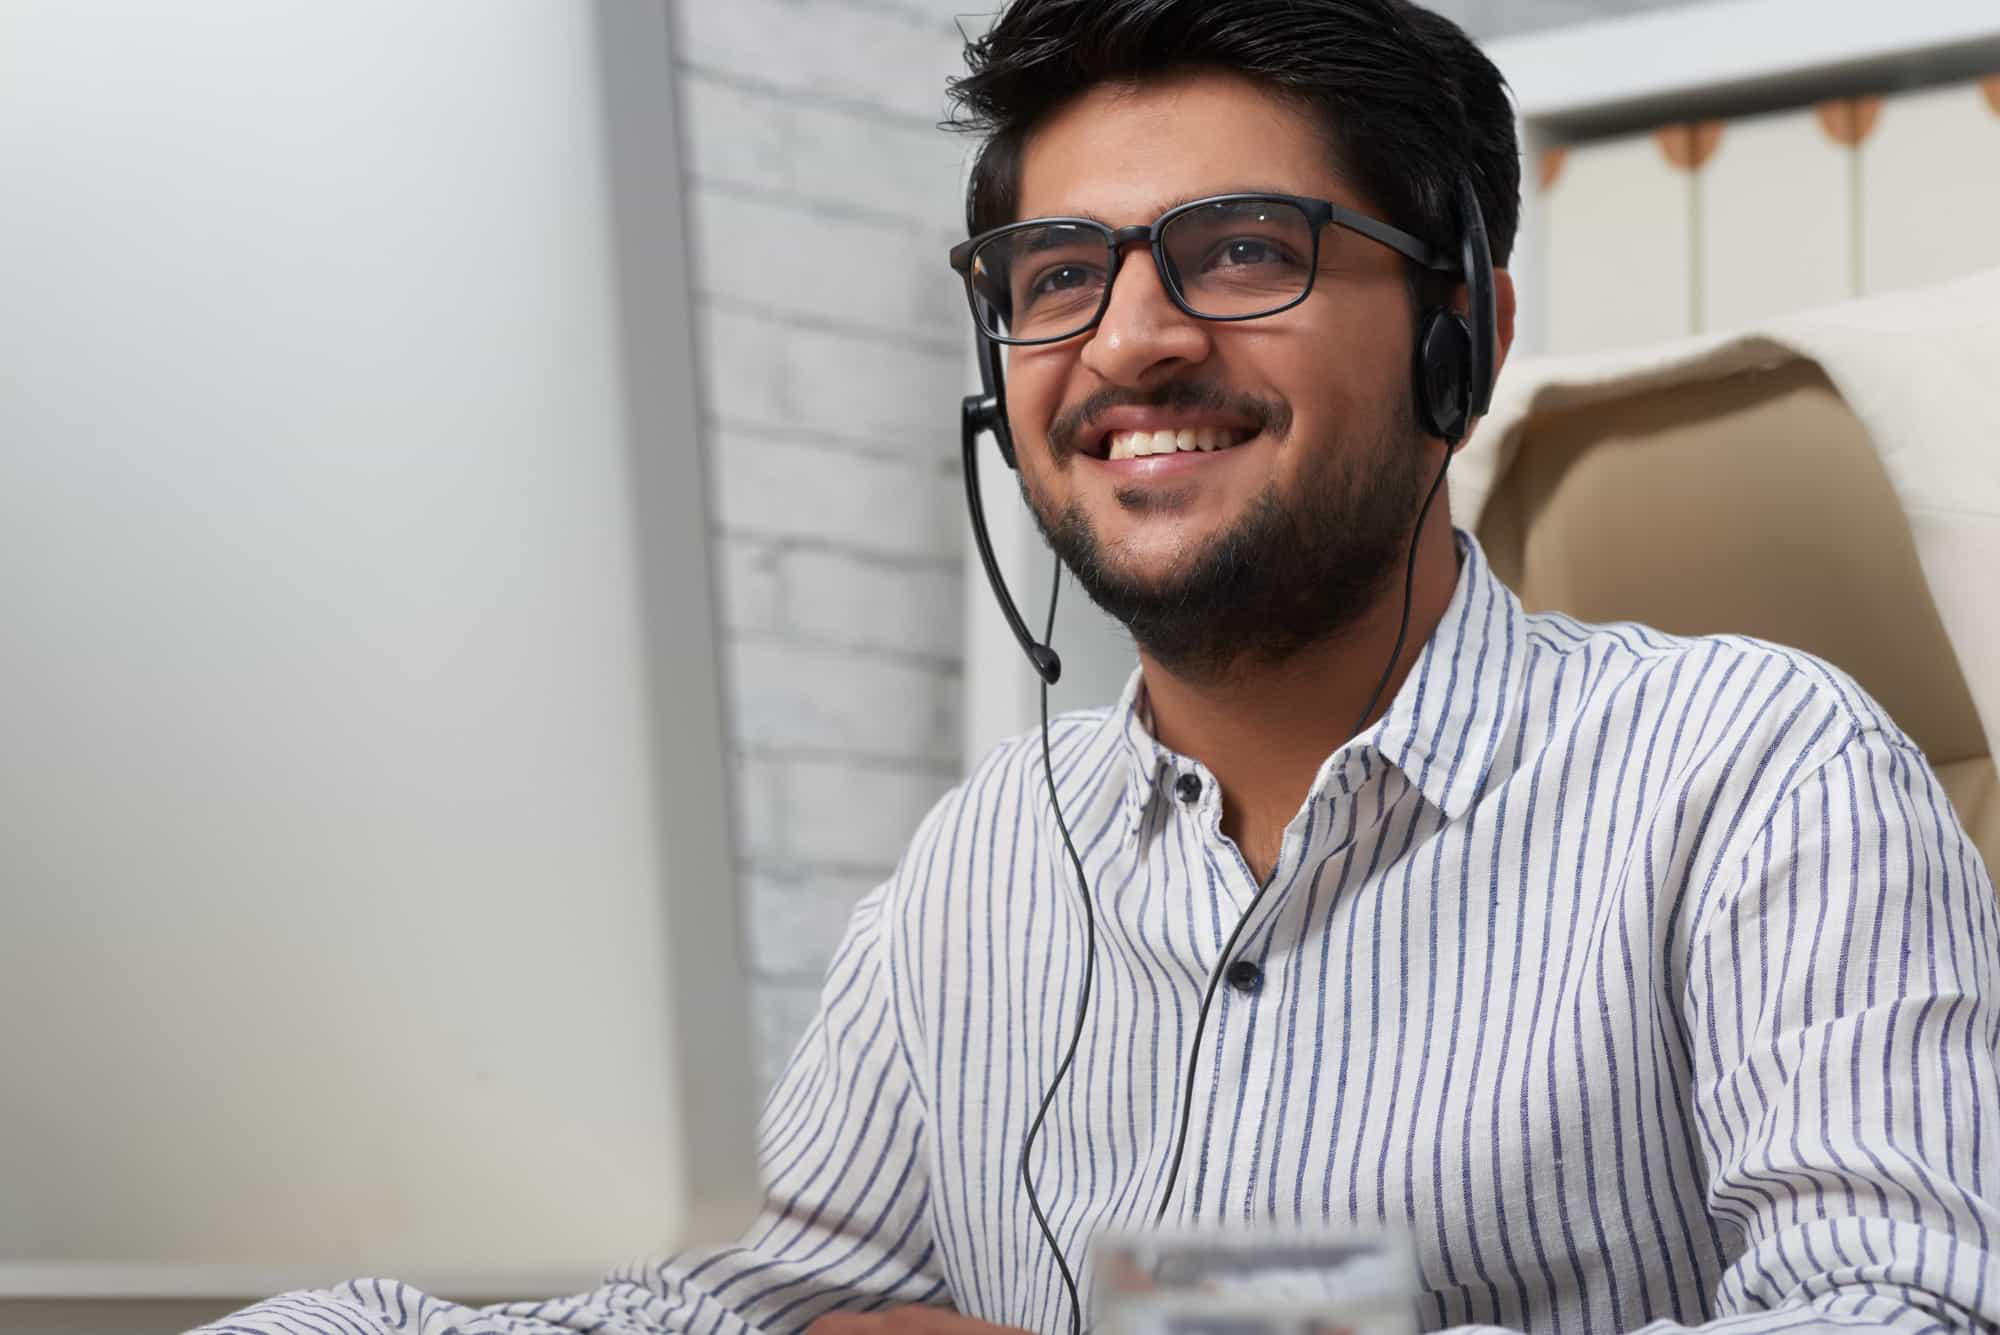 customer support rep smiling